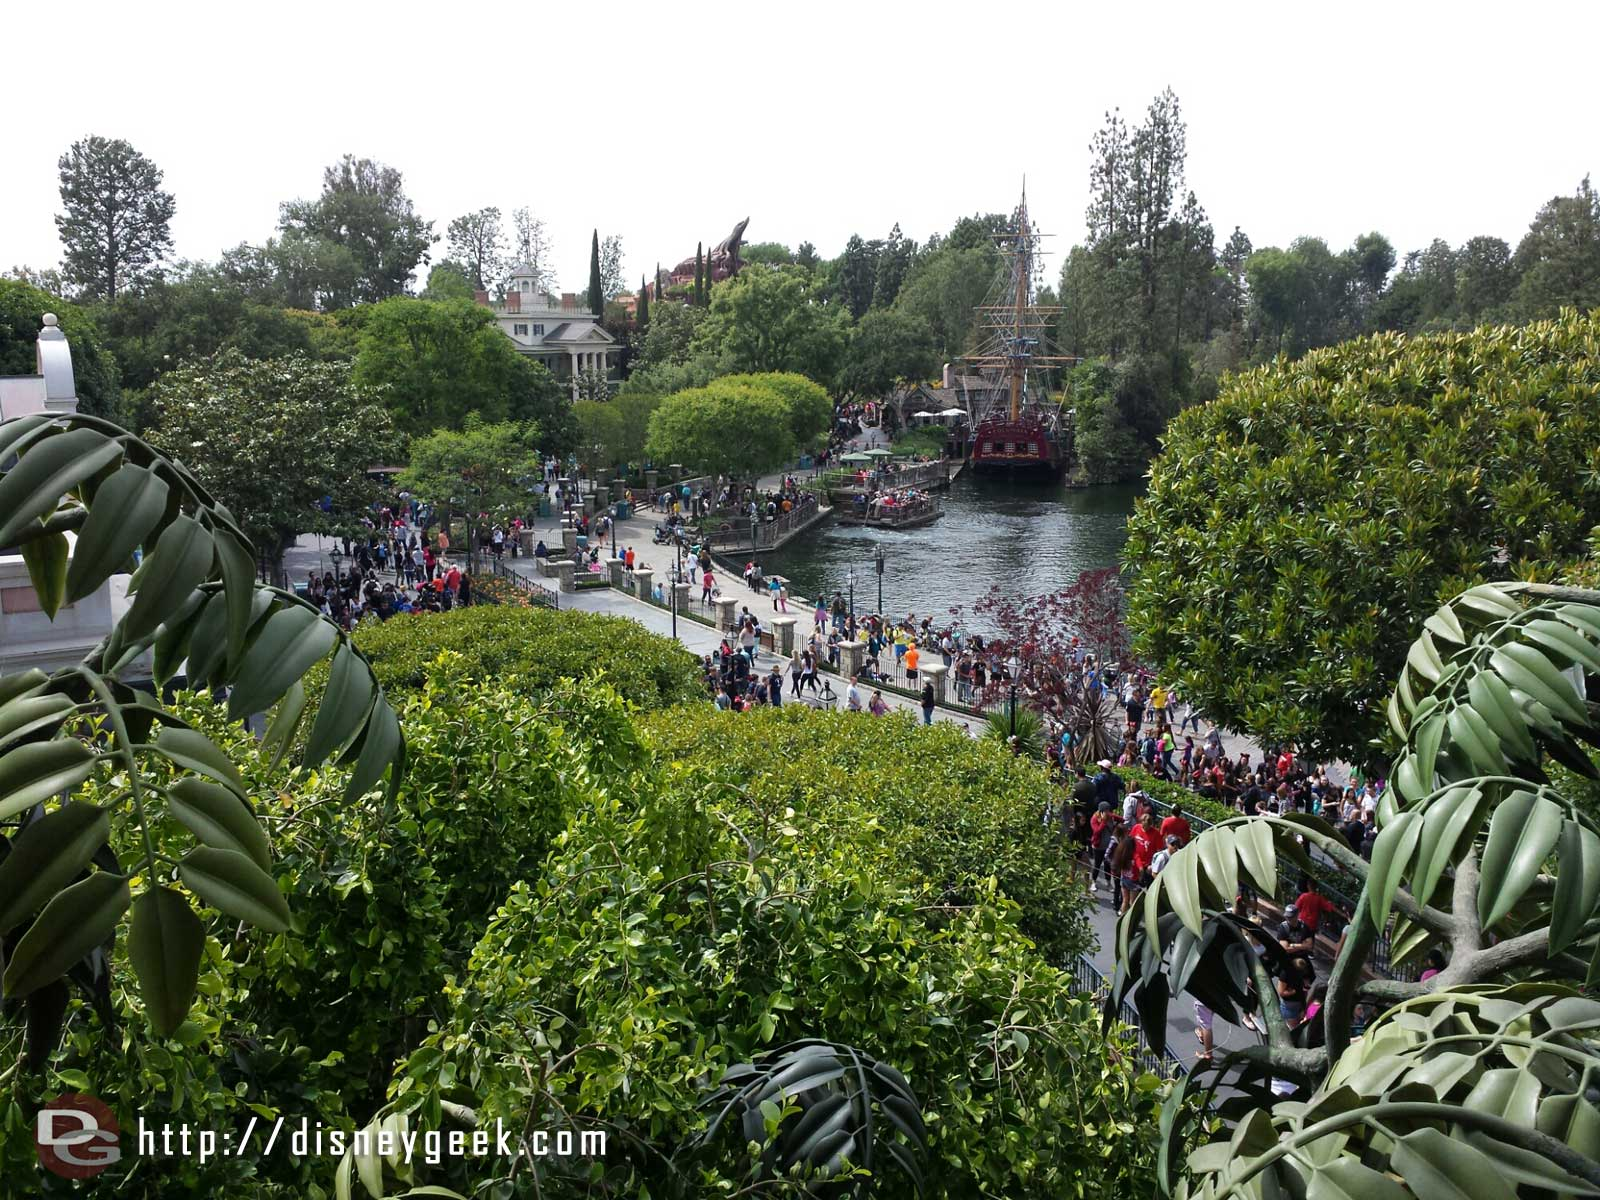 The view from Tarzan's Treehouse of the Rivers of America